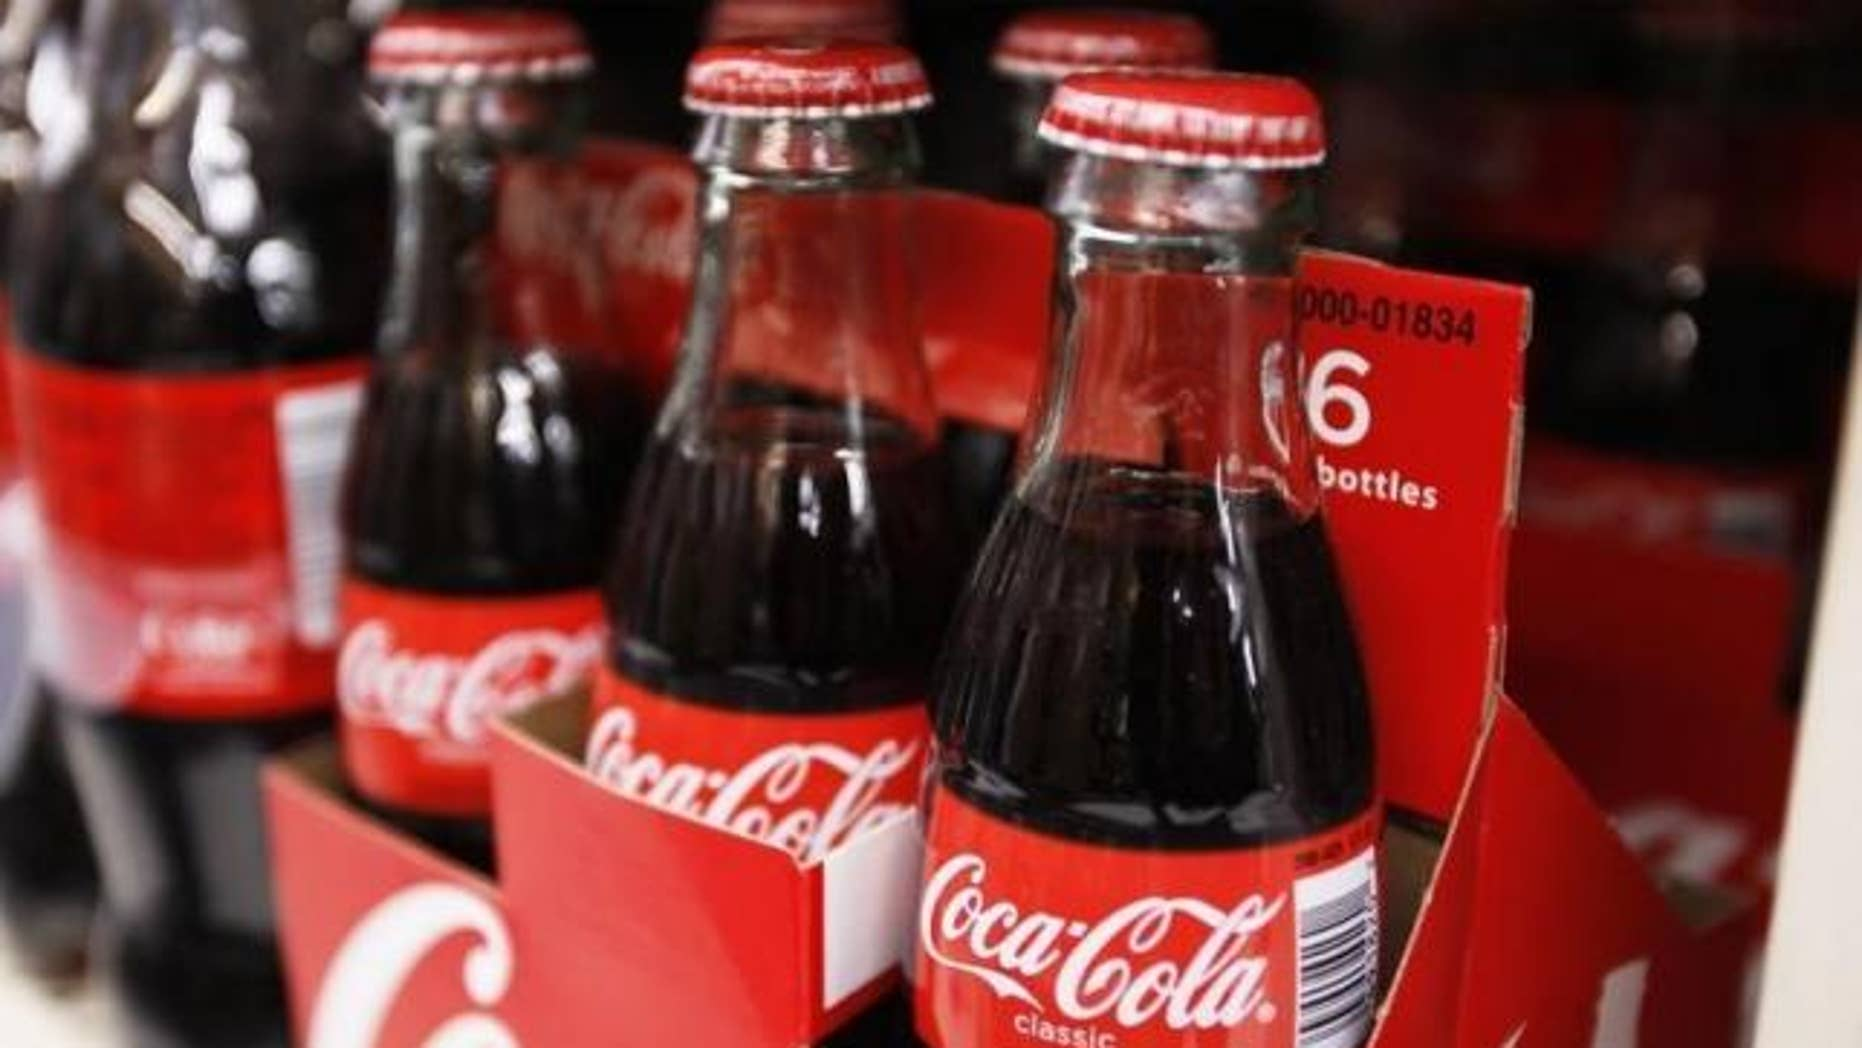 Coca-Cola Mexico has backtracked over an ad featuring an indigenous Mexican community.